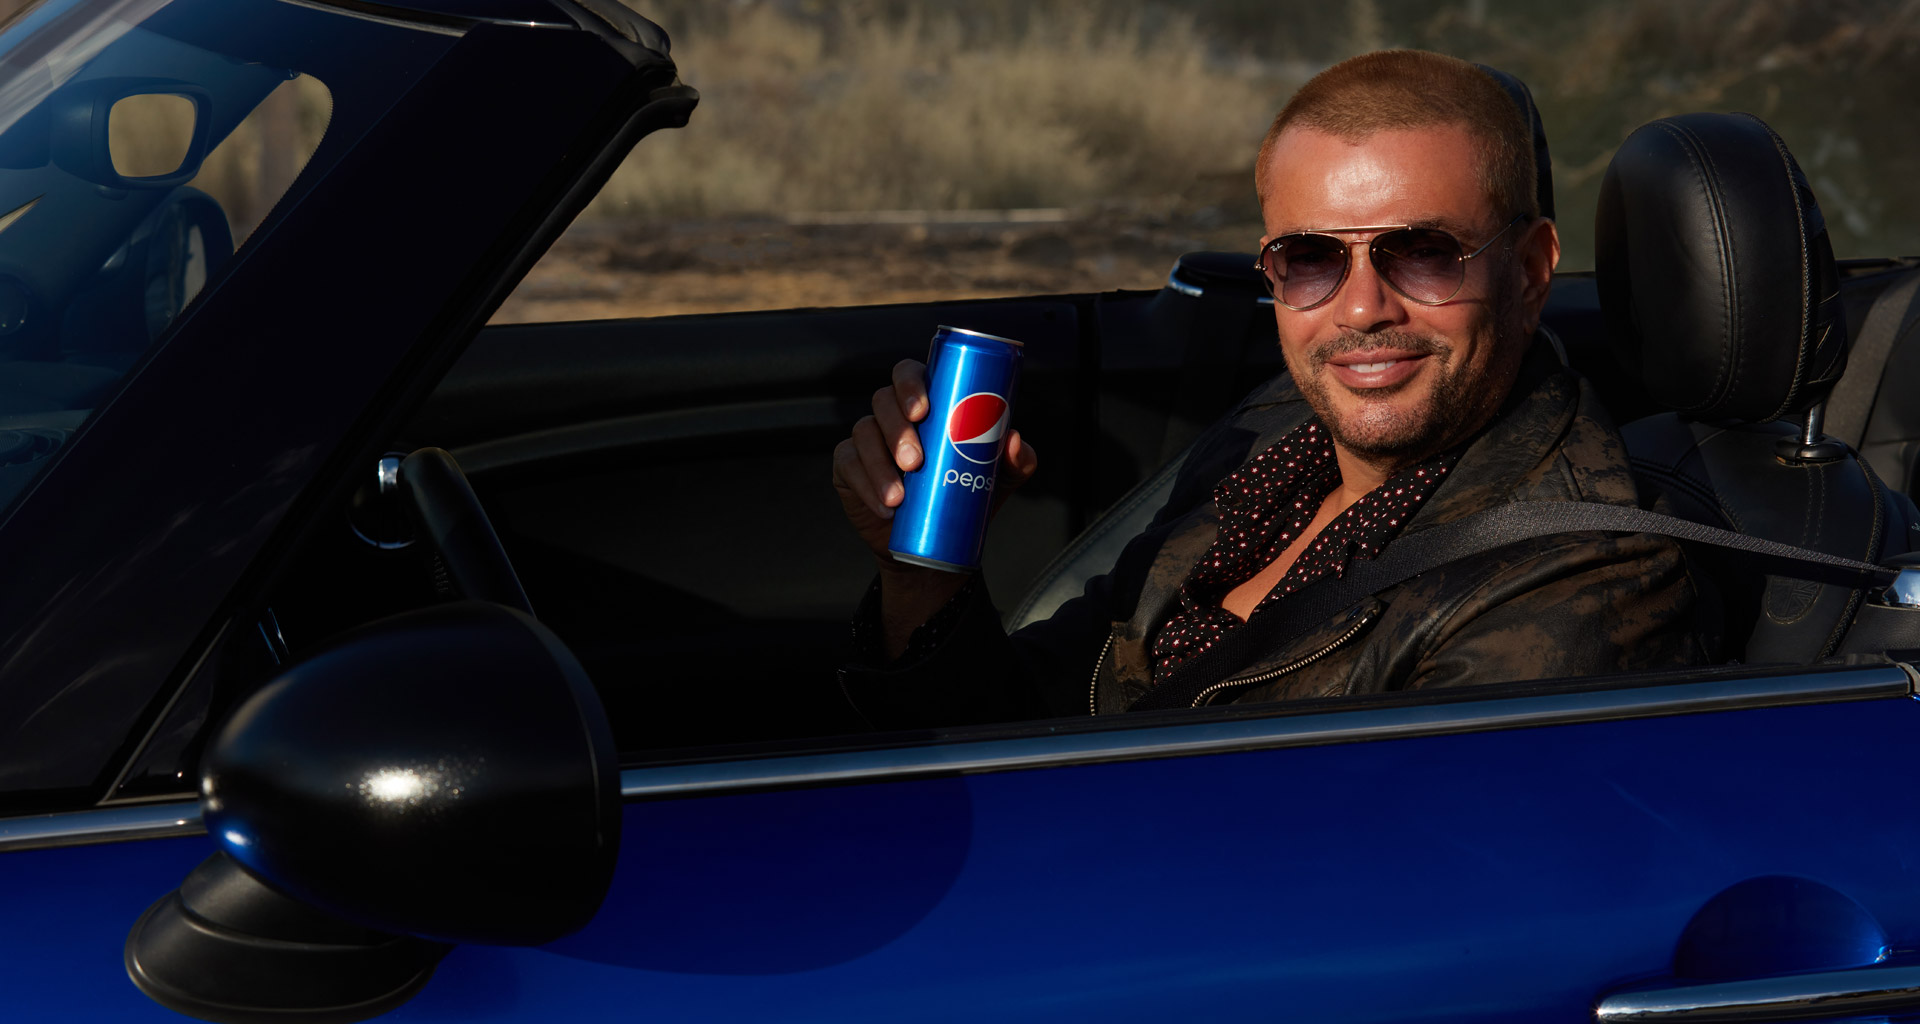 20 Years of Amr Diab and Pepsi